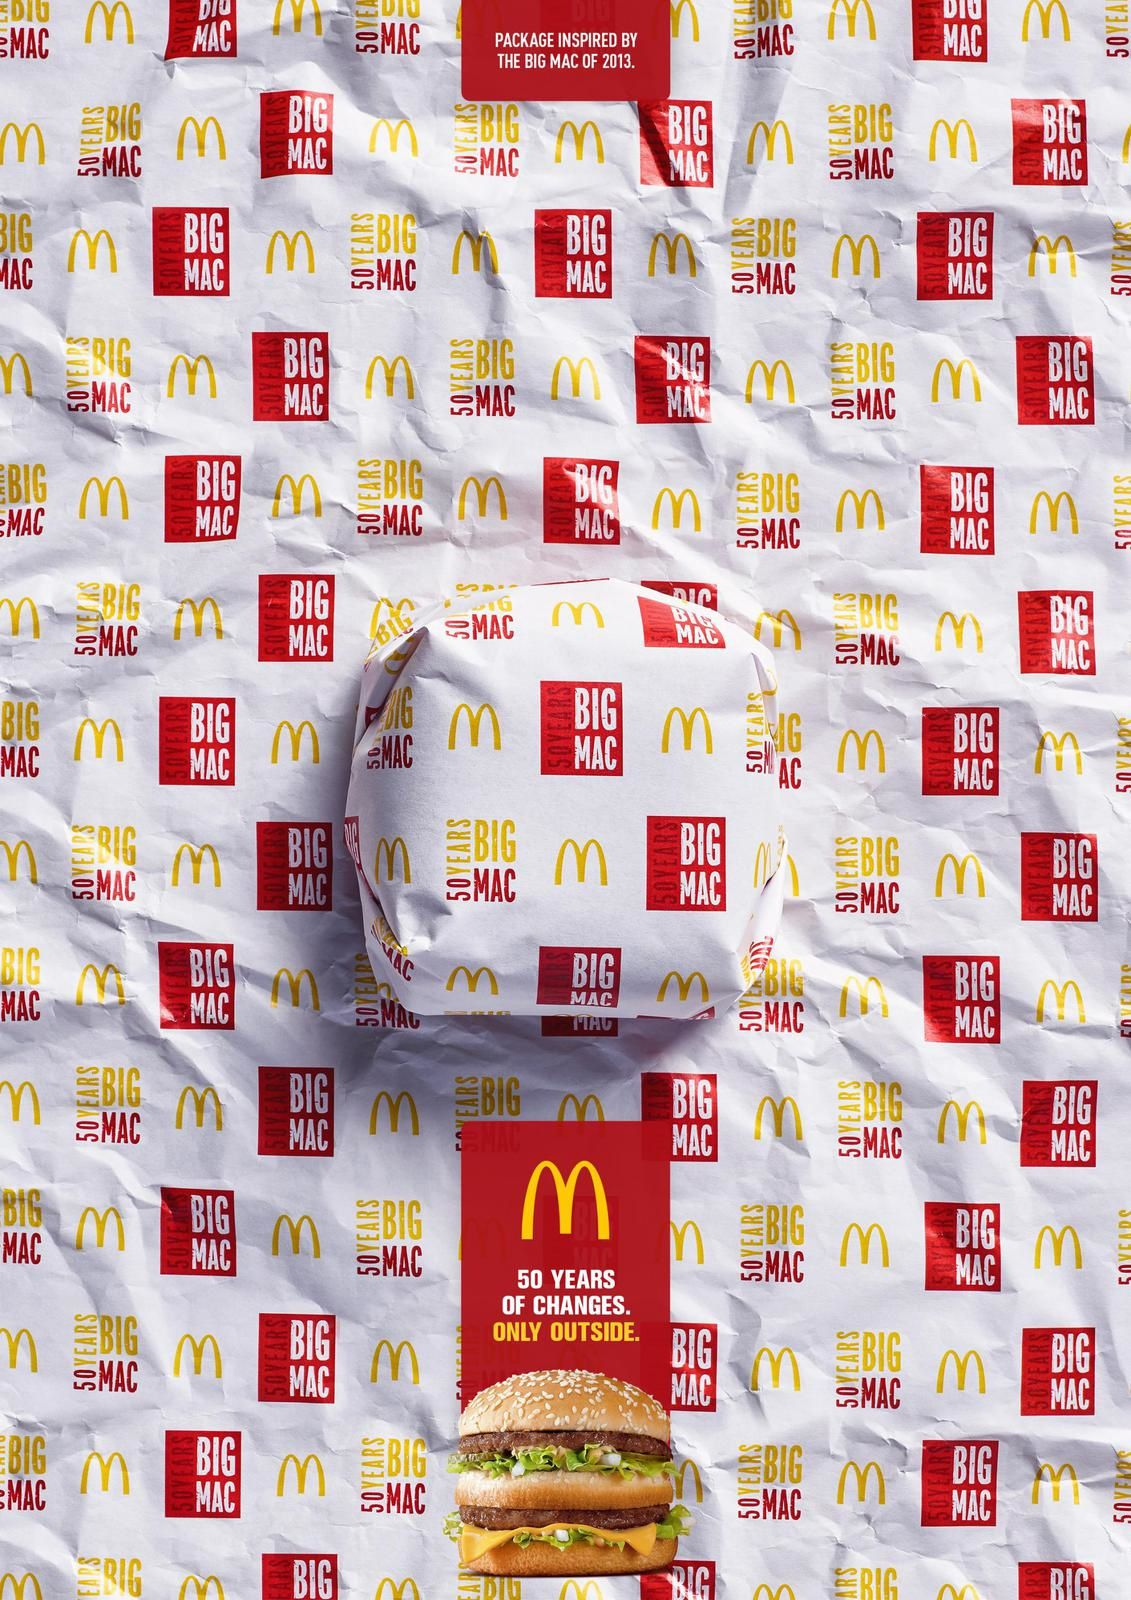 """Big Mac - Packed in History - 2013 I McDonald's : """"Package inspired by the Big Mac of 1968. 50 years of changes. Only outside"""""""